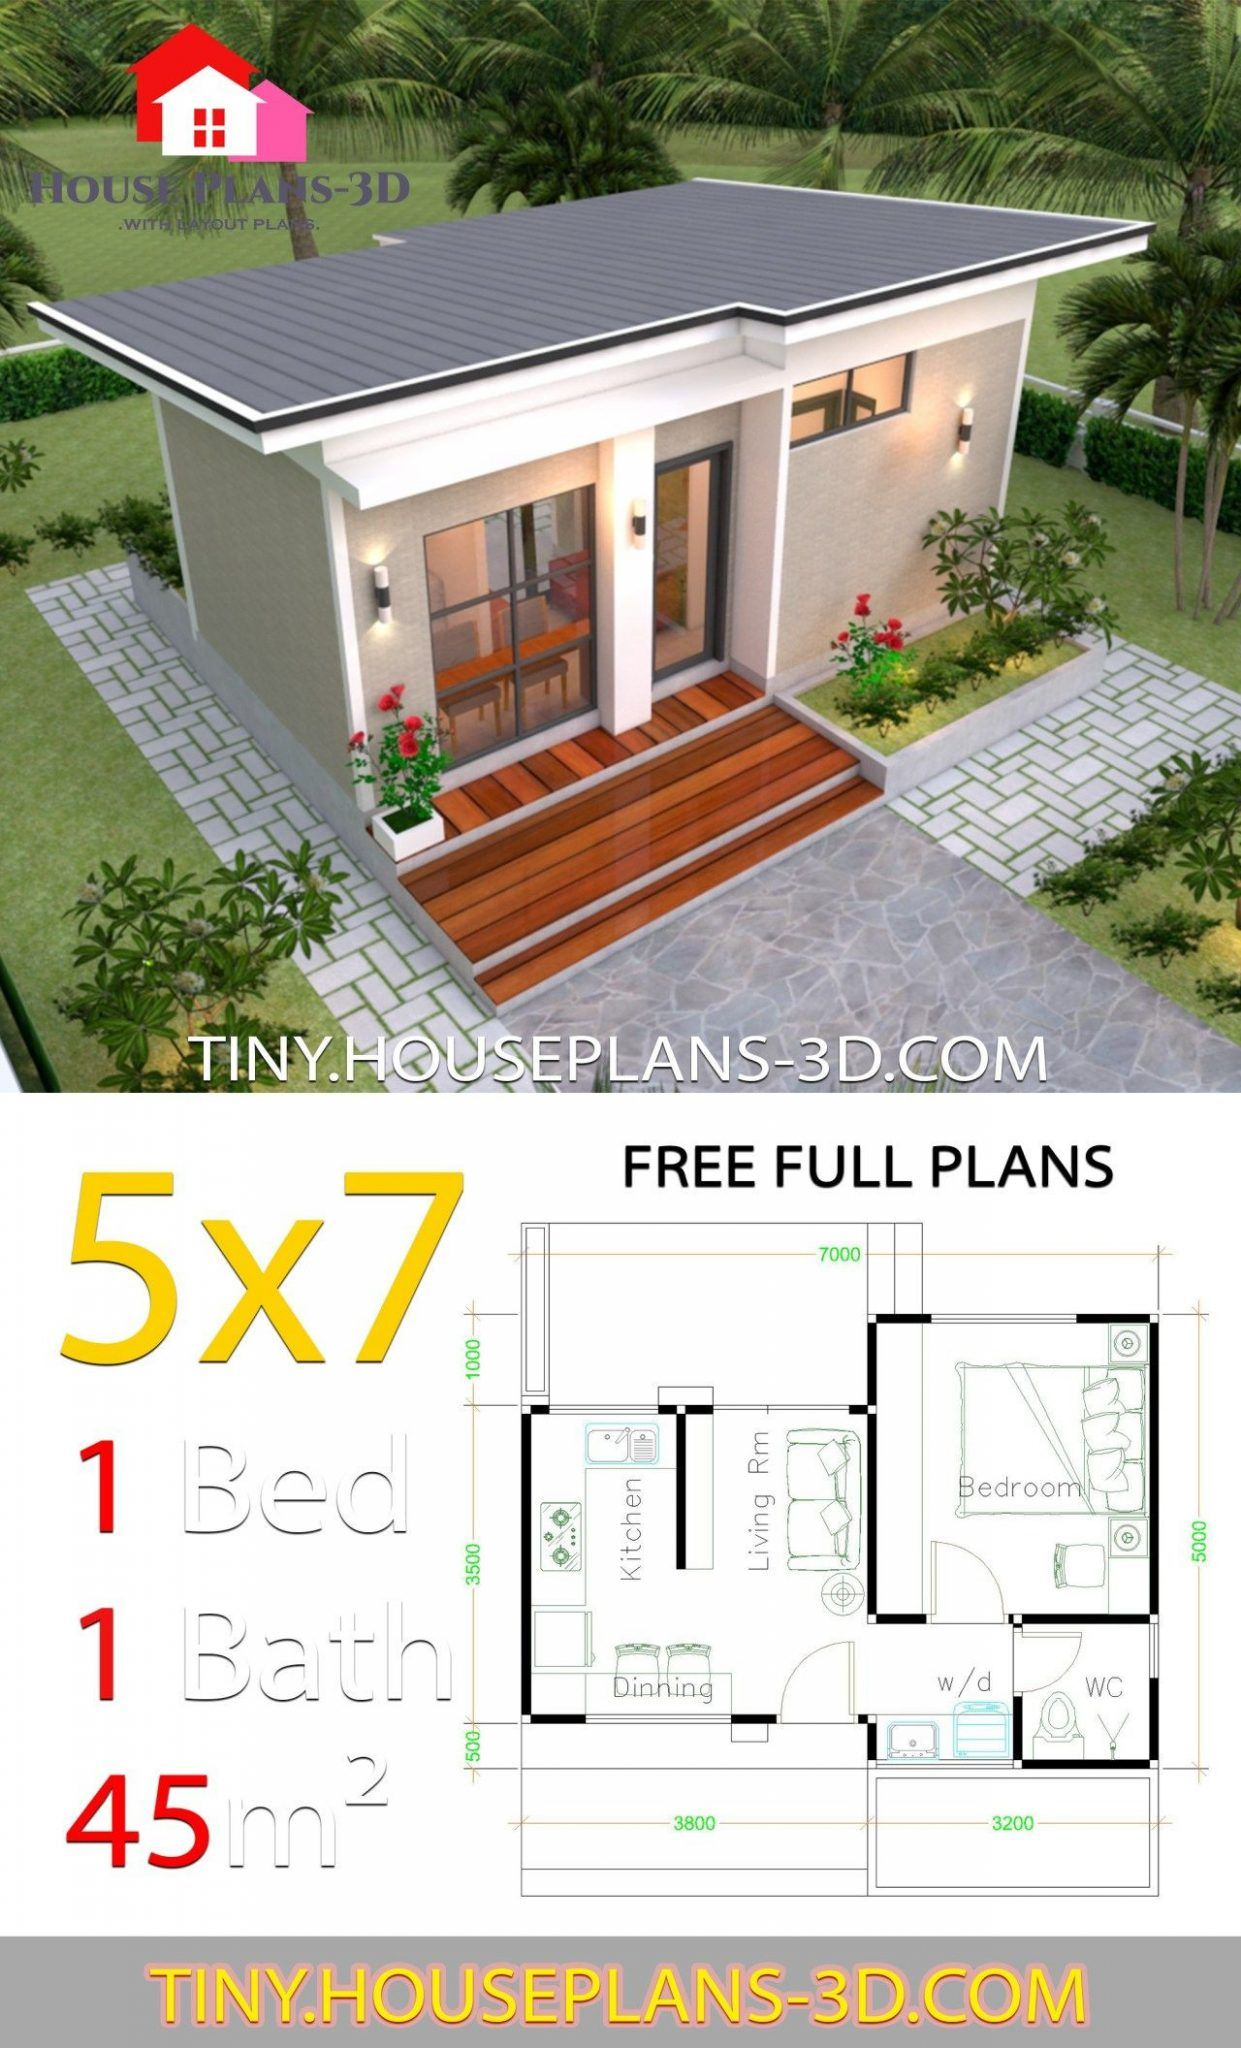 Tiny House Plans One Floor One Bedroom Small House Design Plans 5 7 With E Bedroom Shed Roof H In 2020 Small House Design Plans Simple House Design One Bedroom House